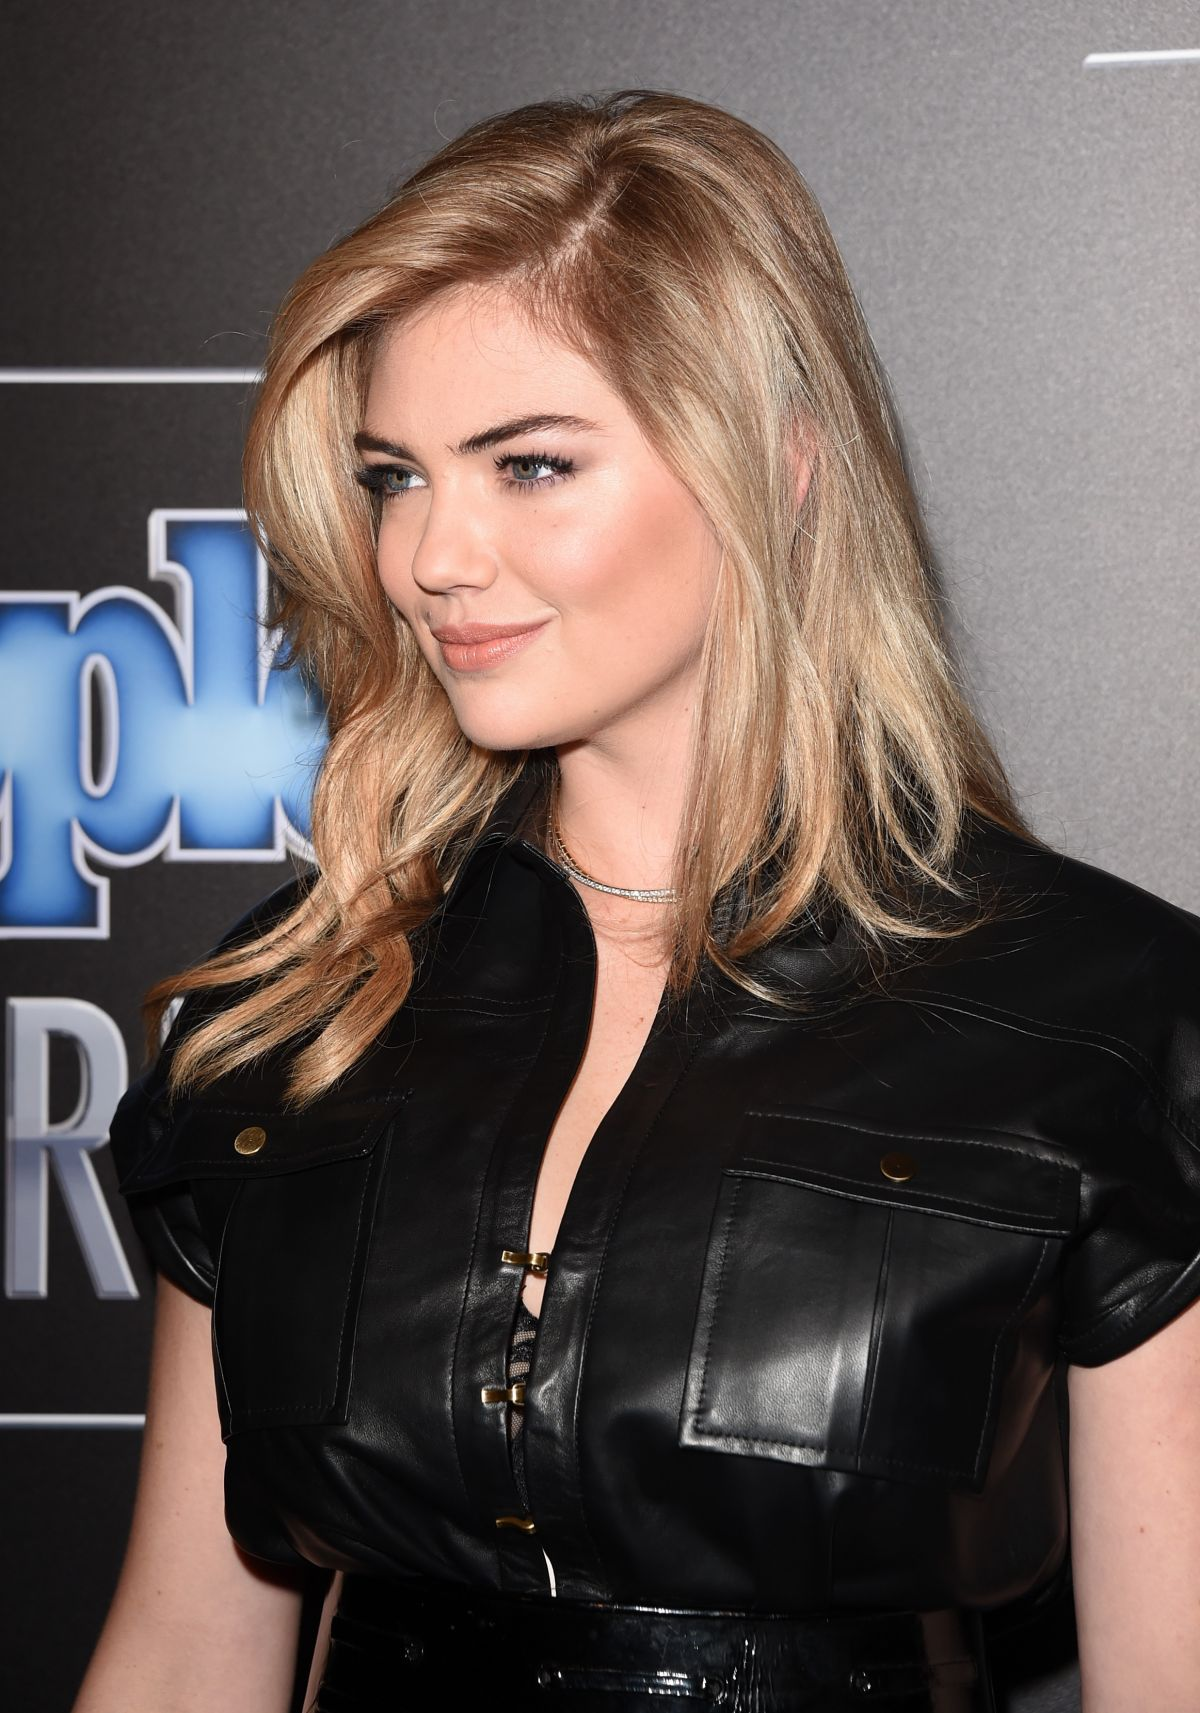 KATE UPTON at The People Magazine Awards in Beverly Hills